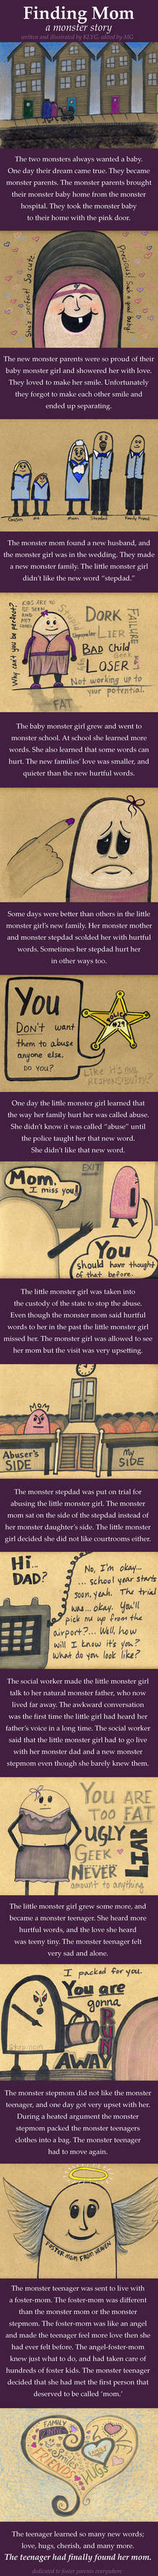 Finding Mom - a monster story